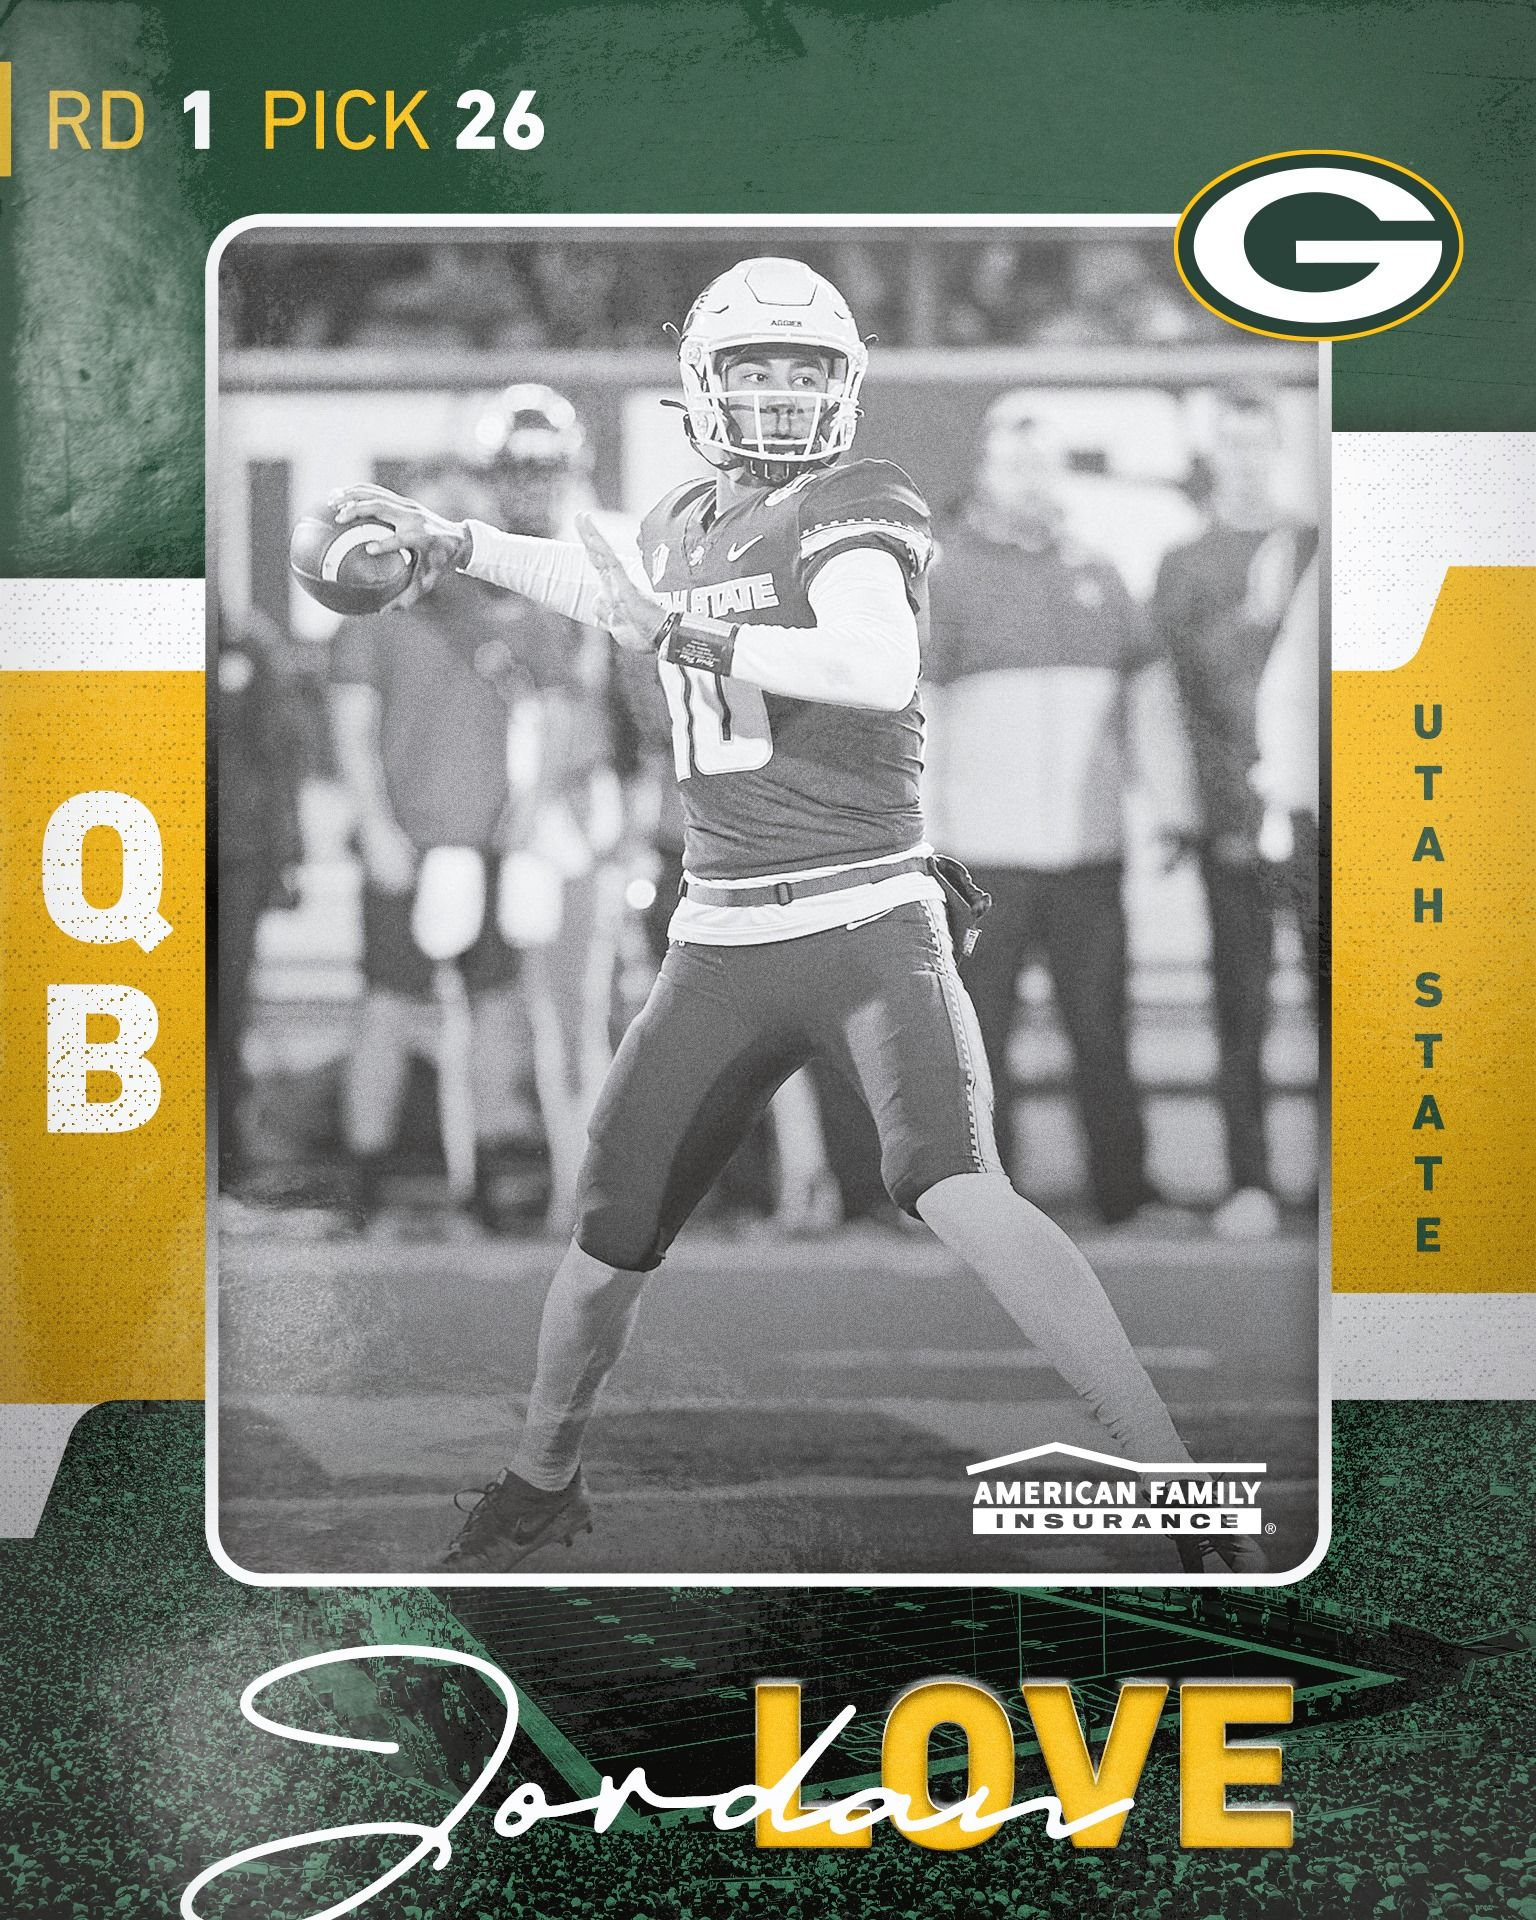 Welcome To Green Bay Jordan Love In 2020 Green Bay Green Bay Packers Packers